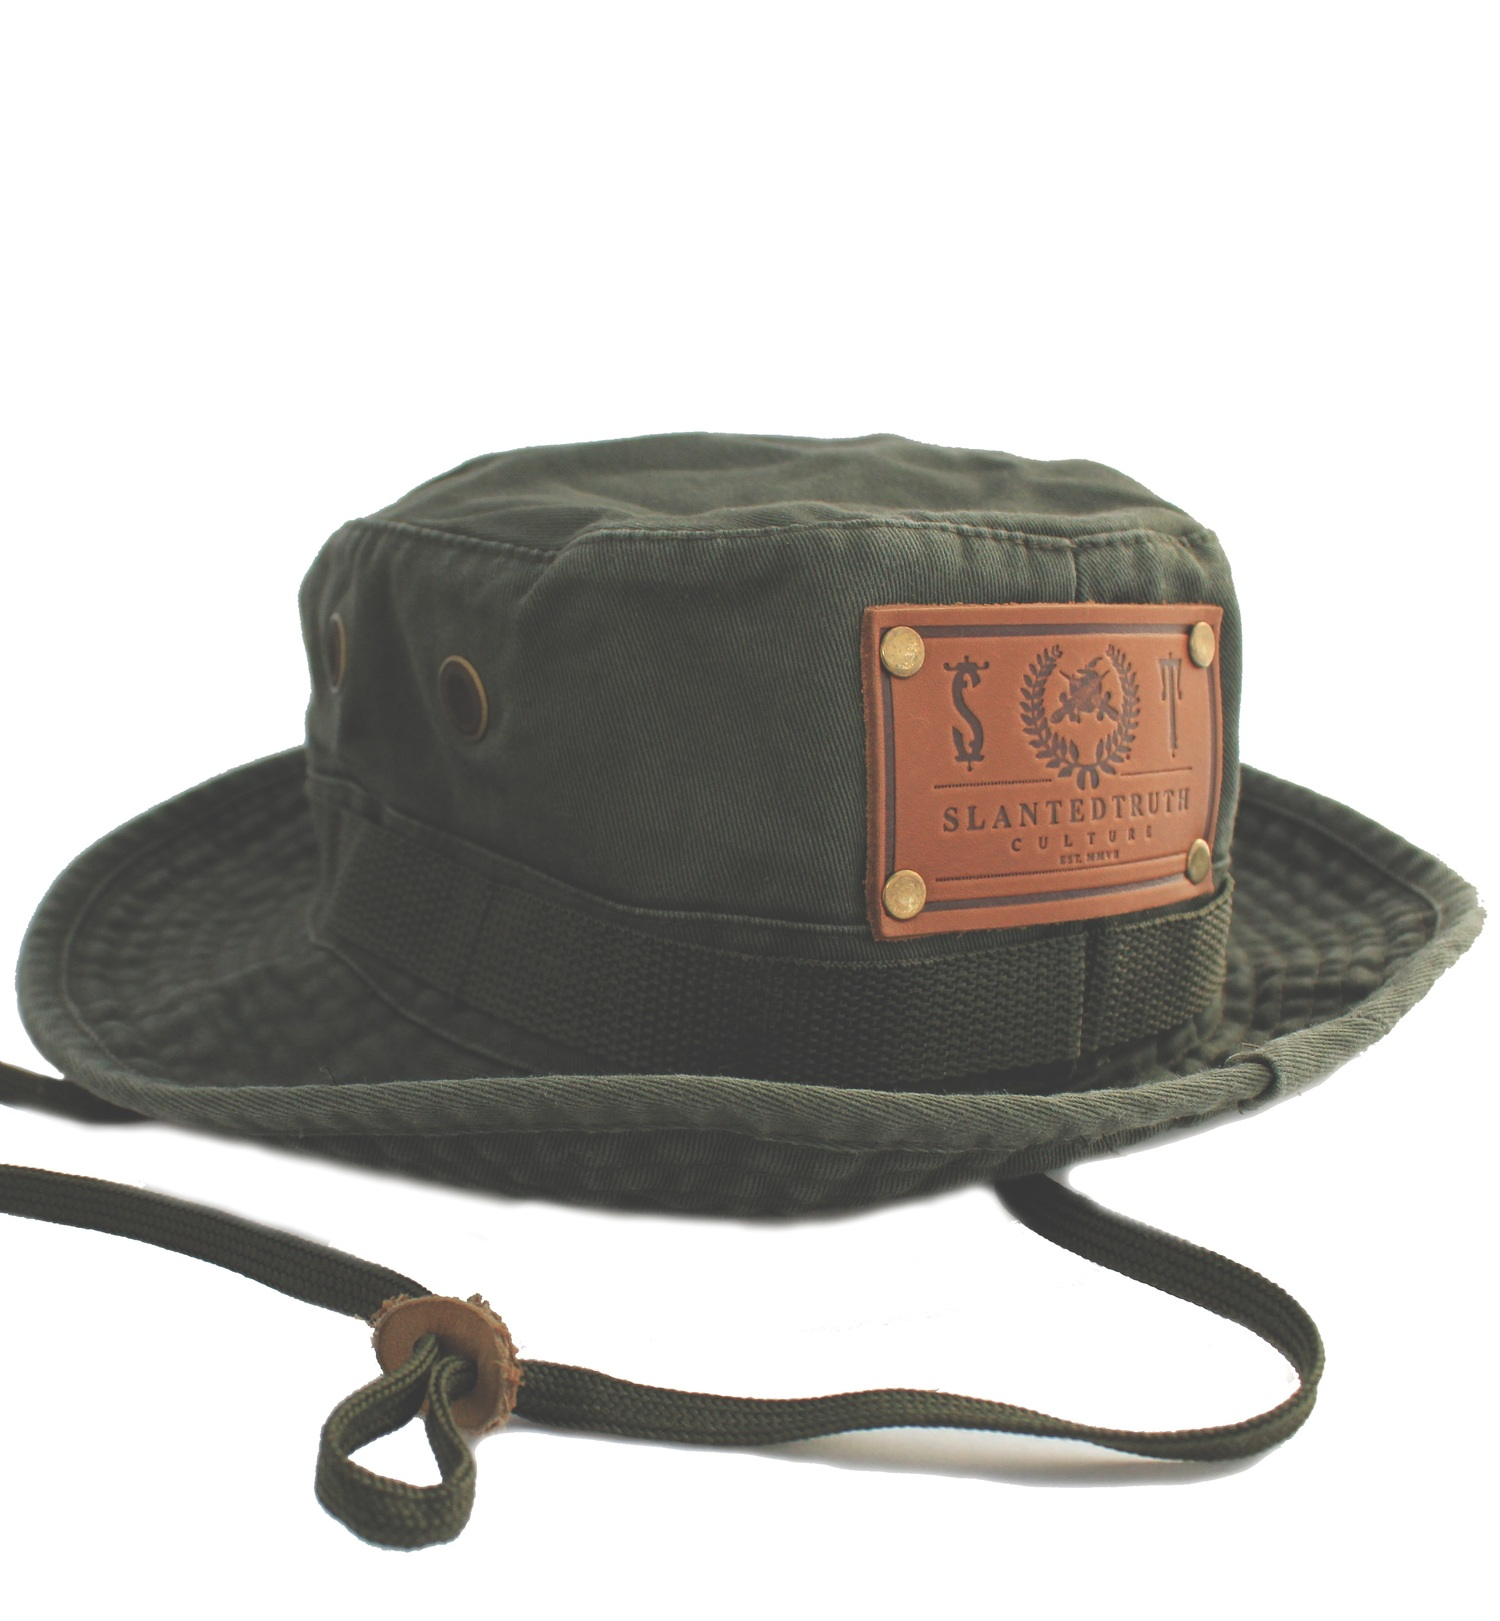 756b9715cca16 Vintage Boonie Hat   Solid Forest — S L A N T E D T R U T H